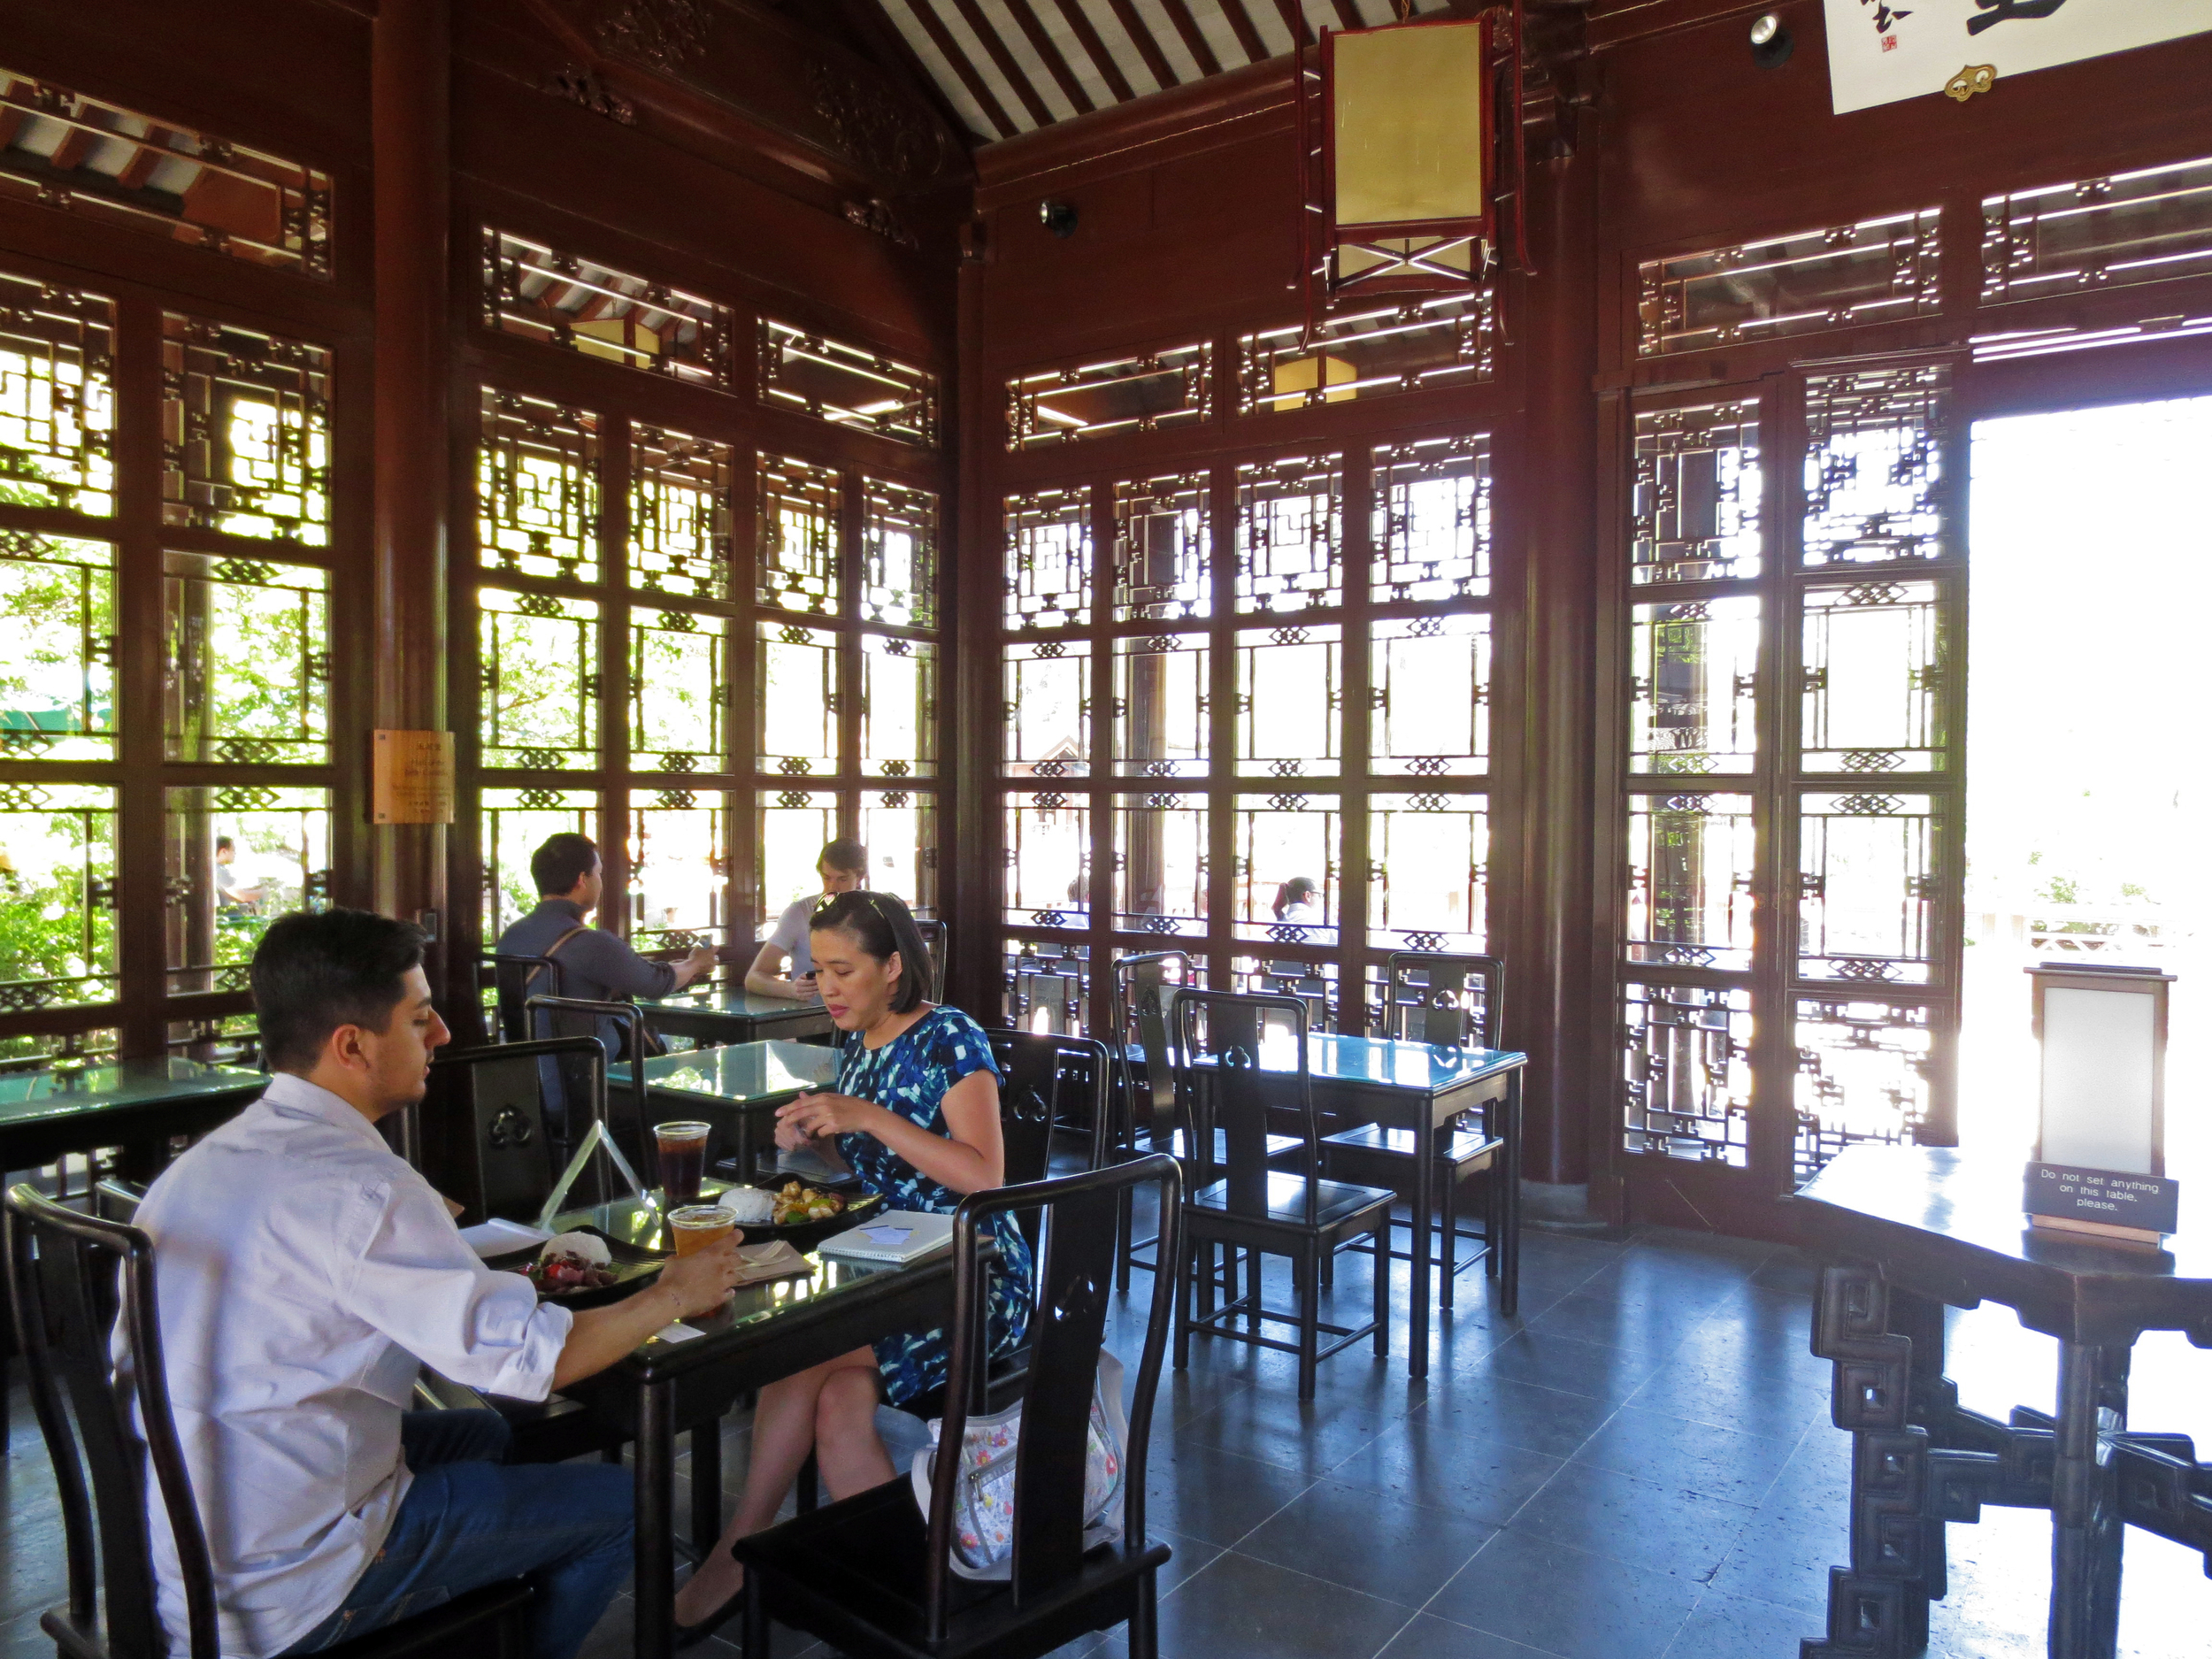 The Chinese Tea House provides quite a different atmosphere for tea time.